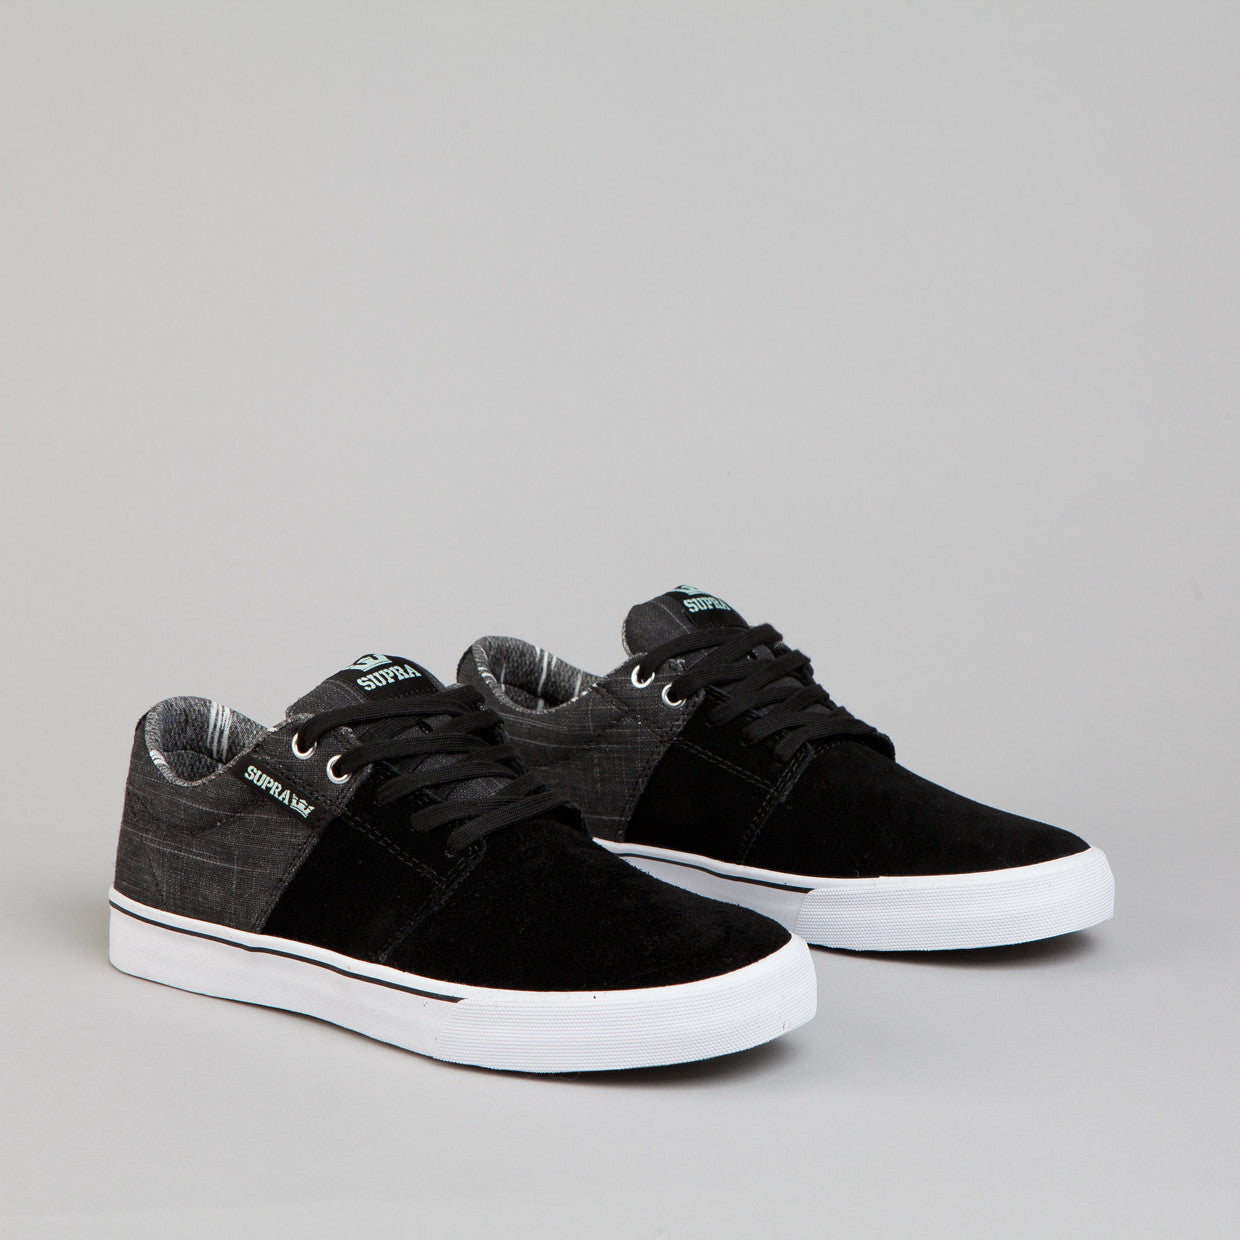 Supra Stacks Vulc 2 Black / Grey - White